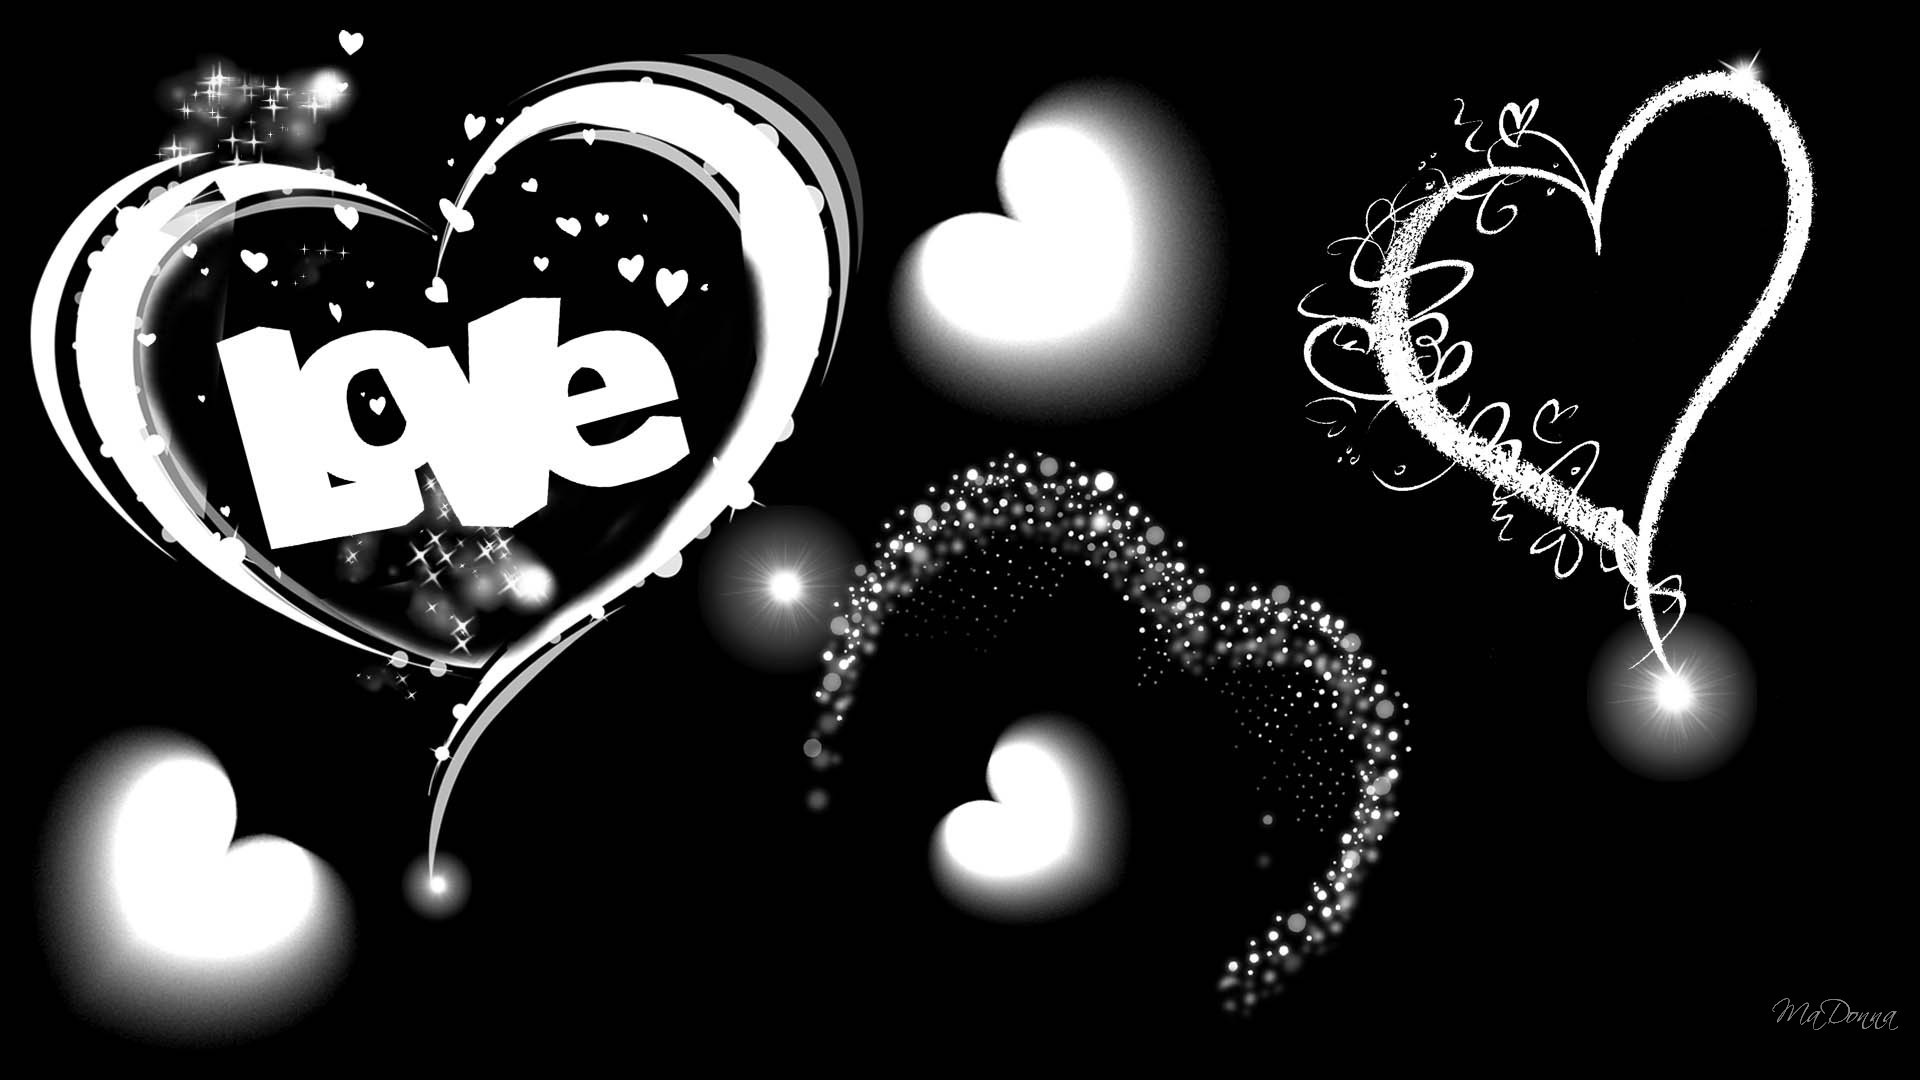 Res: 1920x1080, The Word Love in Black and White Wallpaper